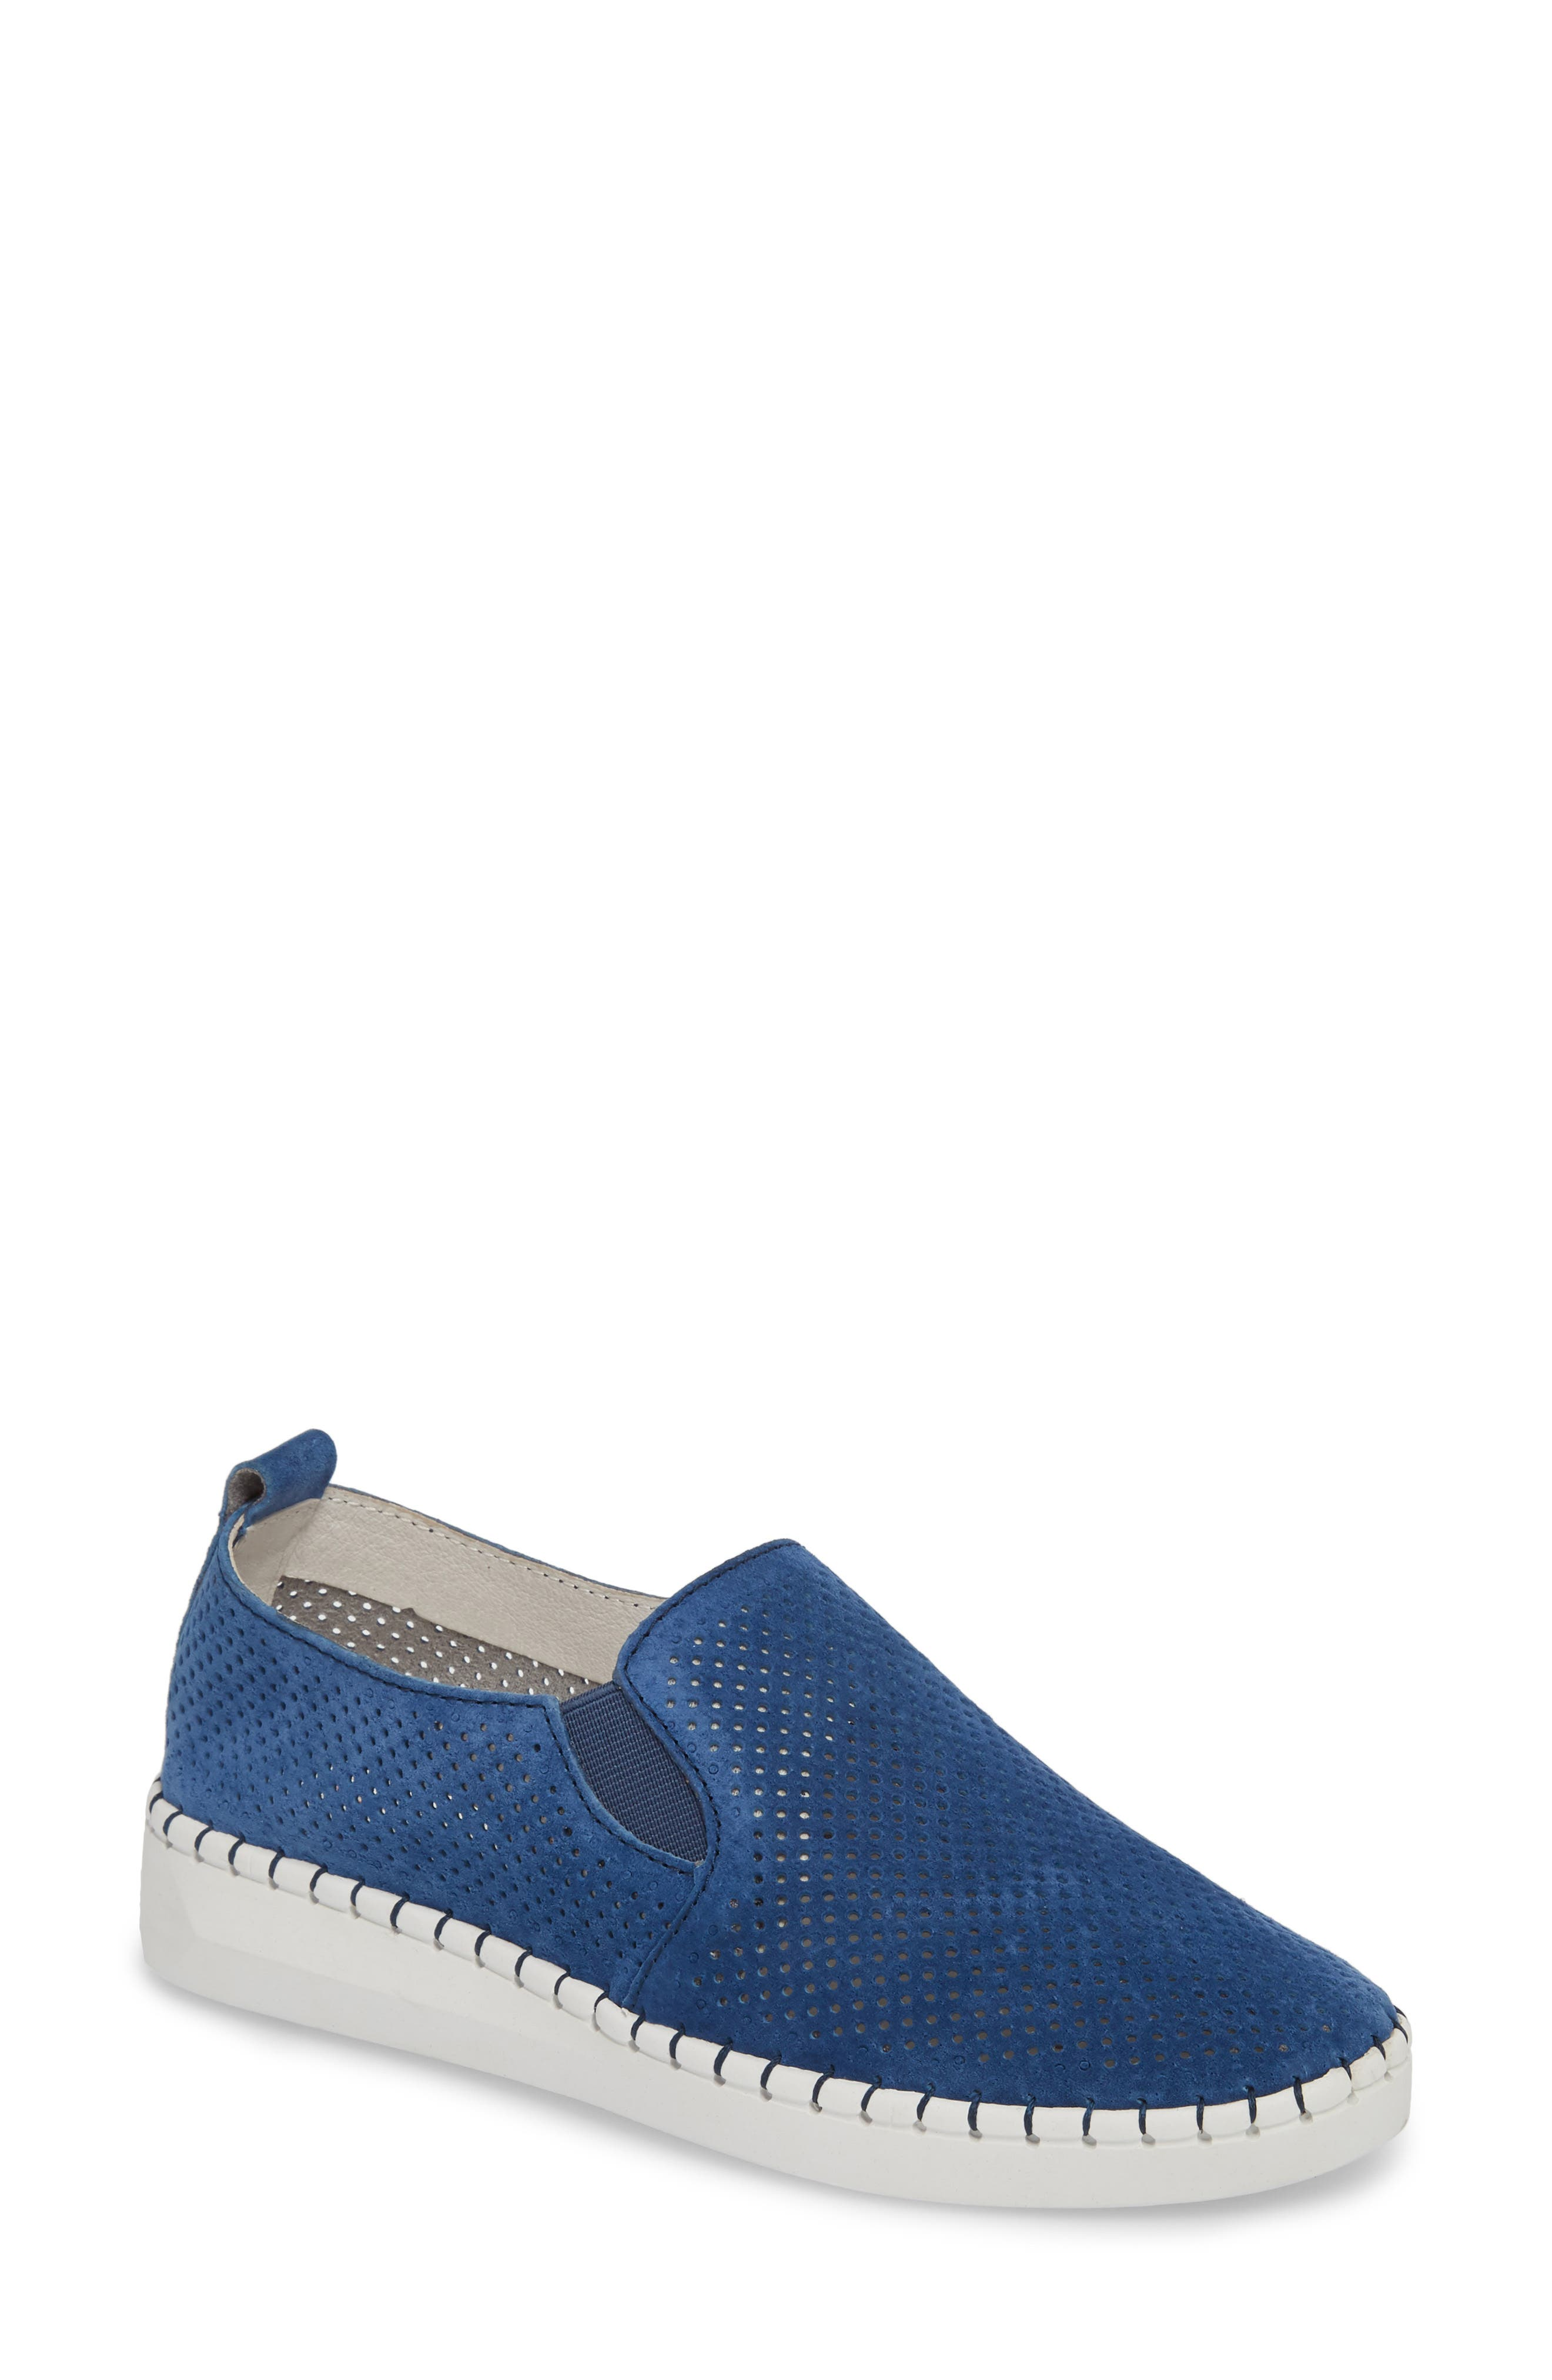 Slip-On Sneaker,                         Main,                         color, BLUE LEATHER